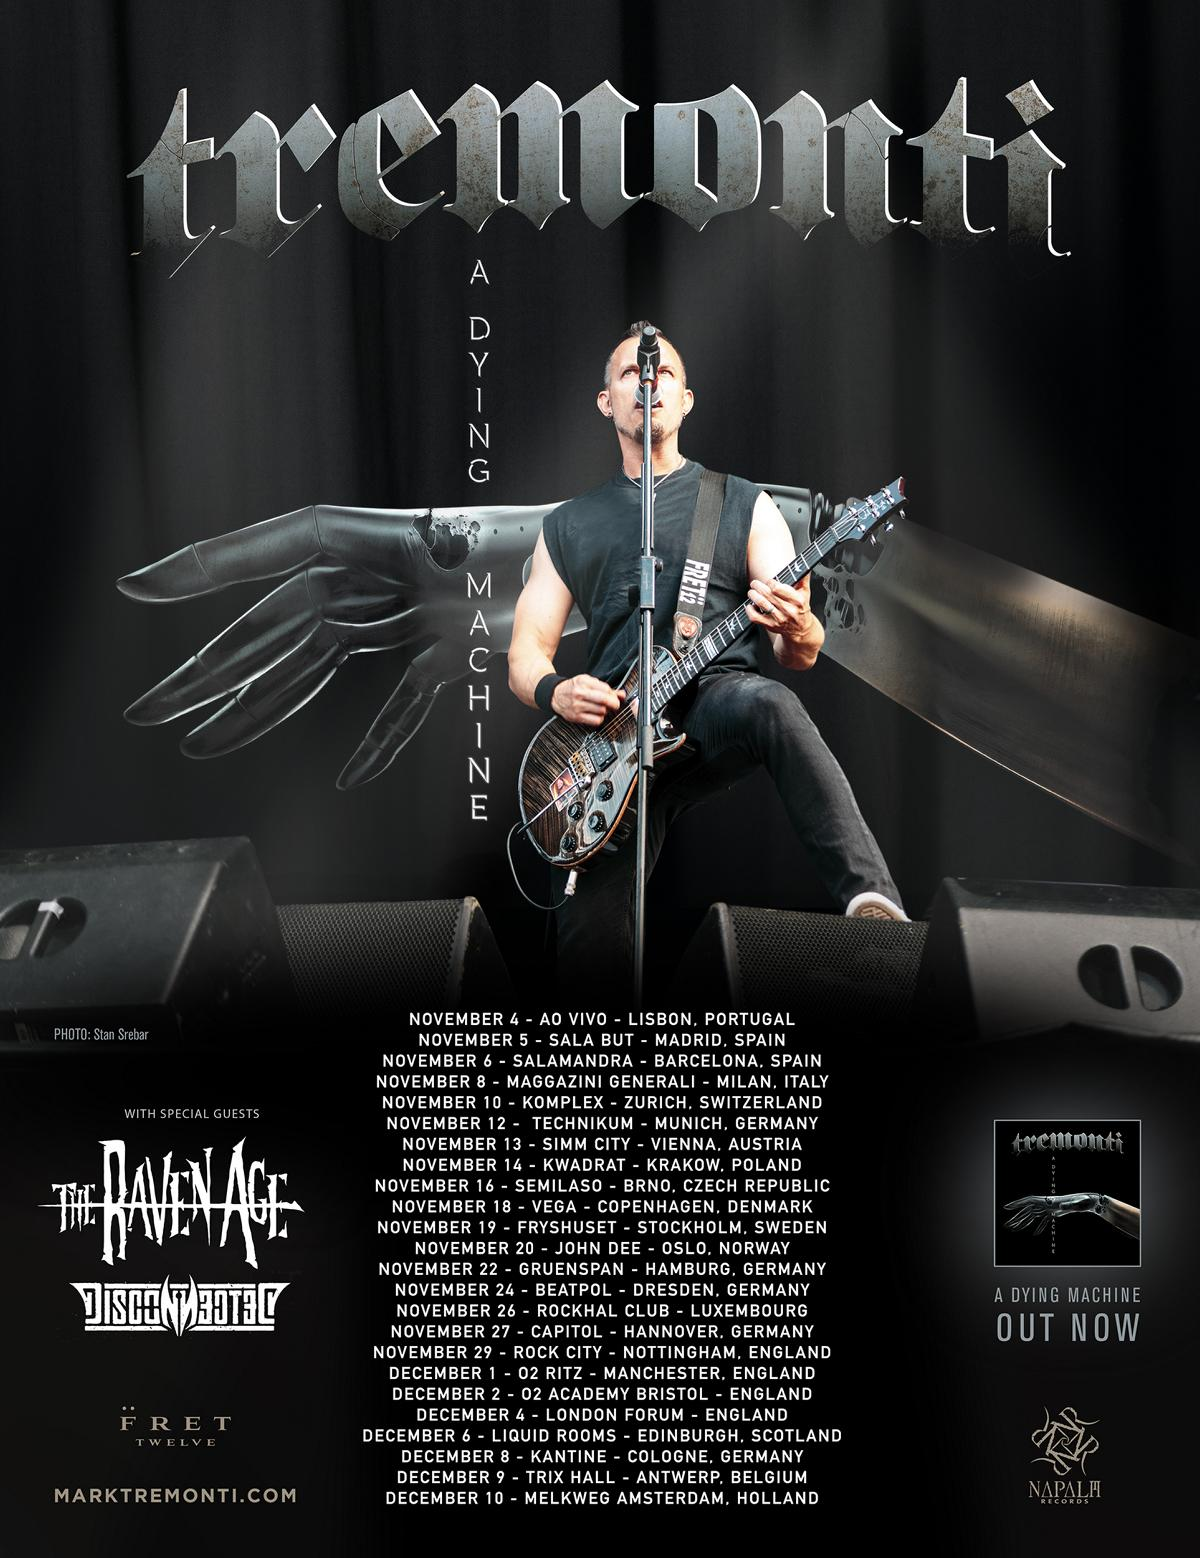 Tremonti - A Dying Machine Winter Tour 2018